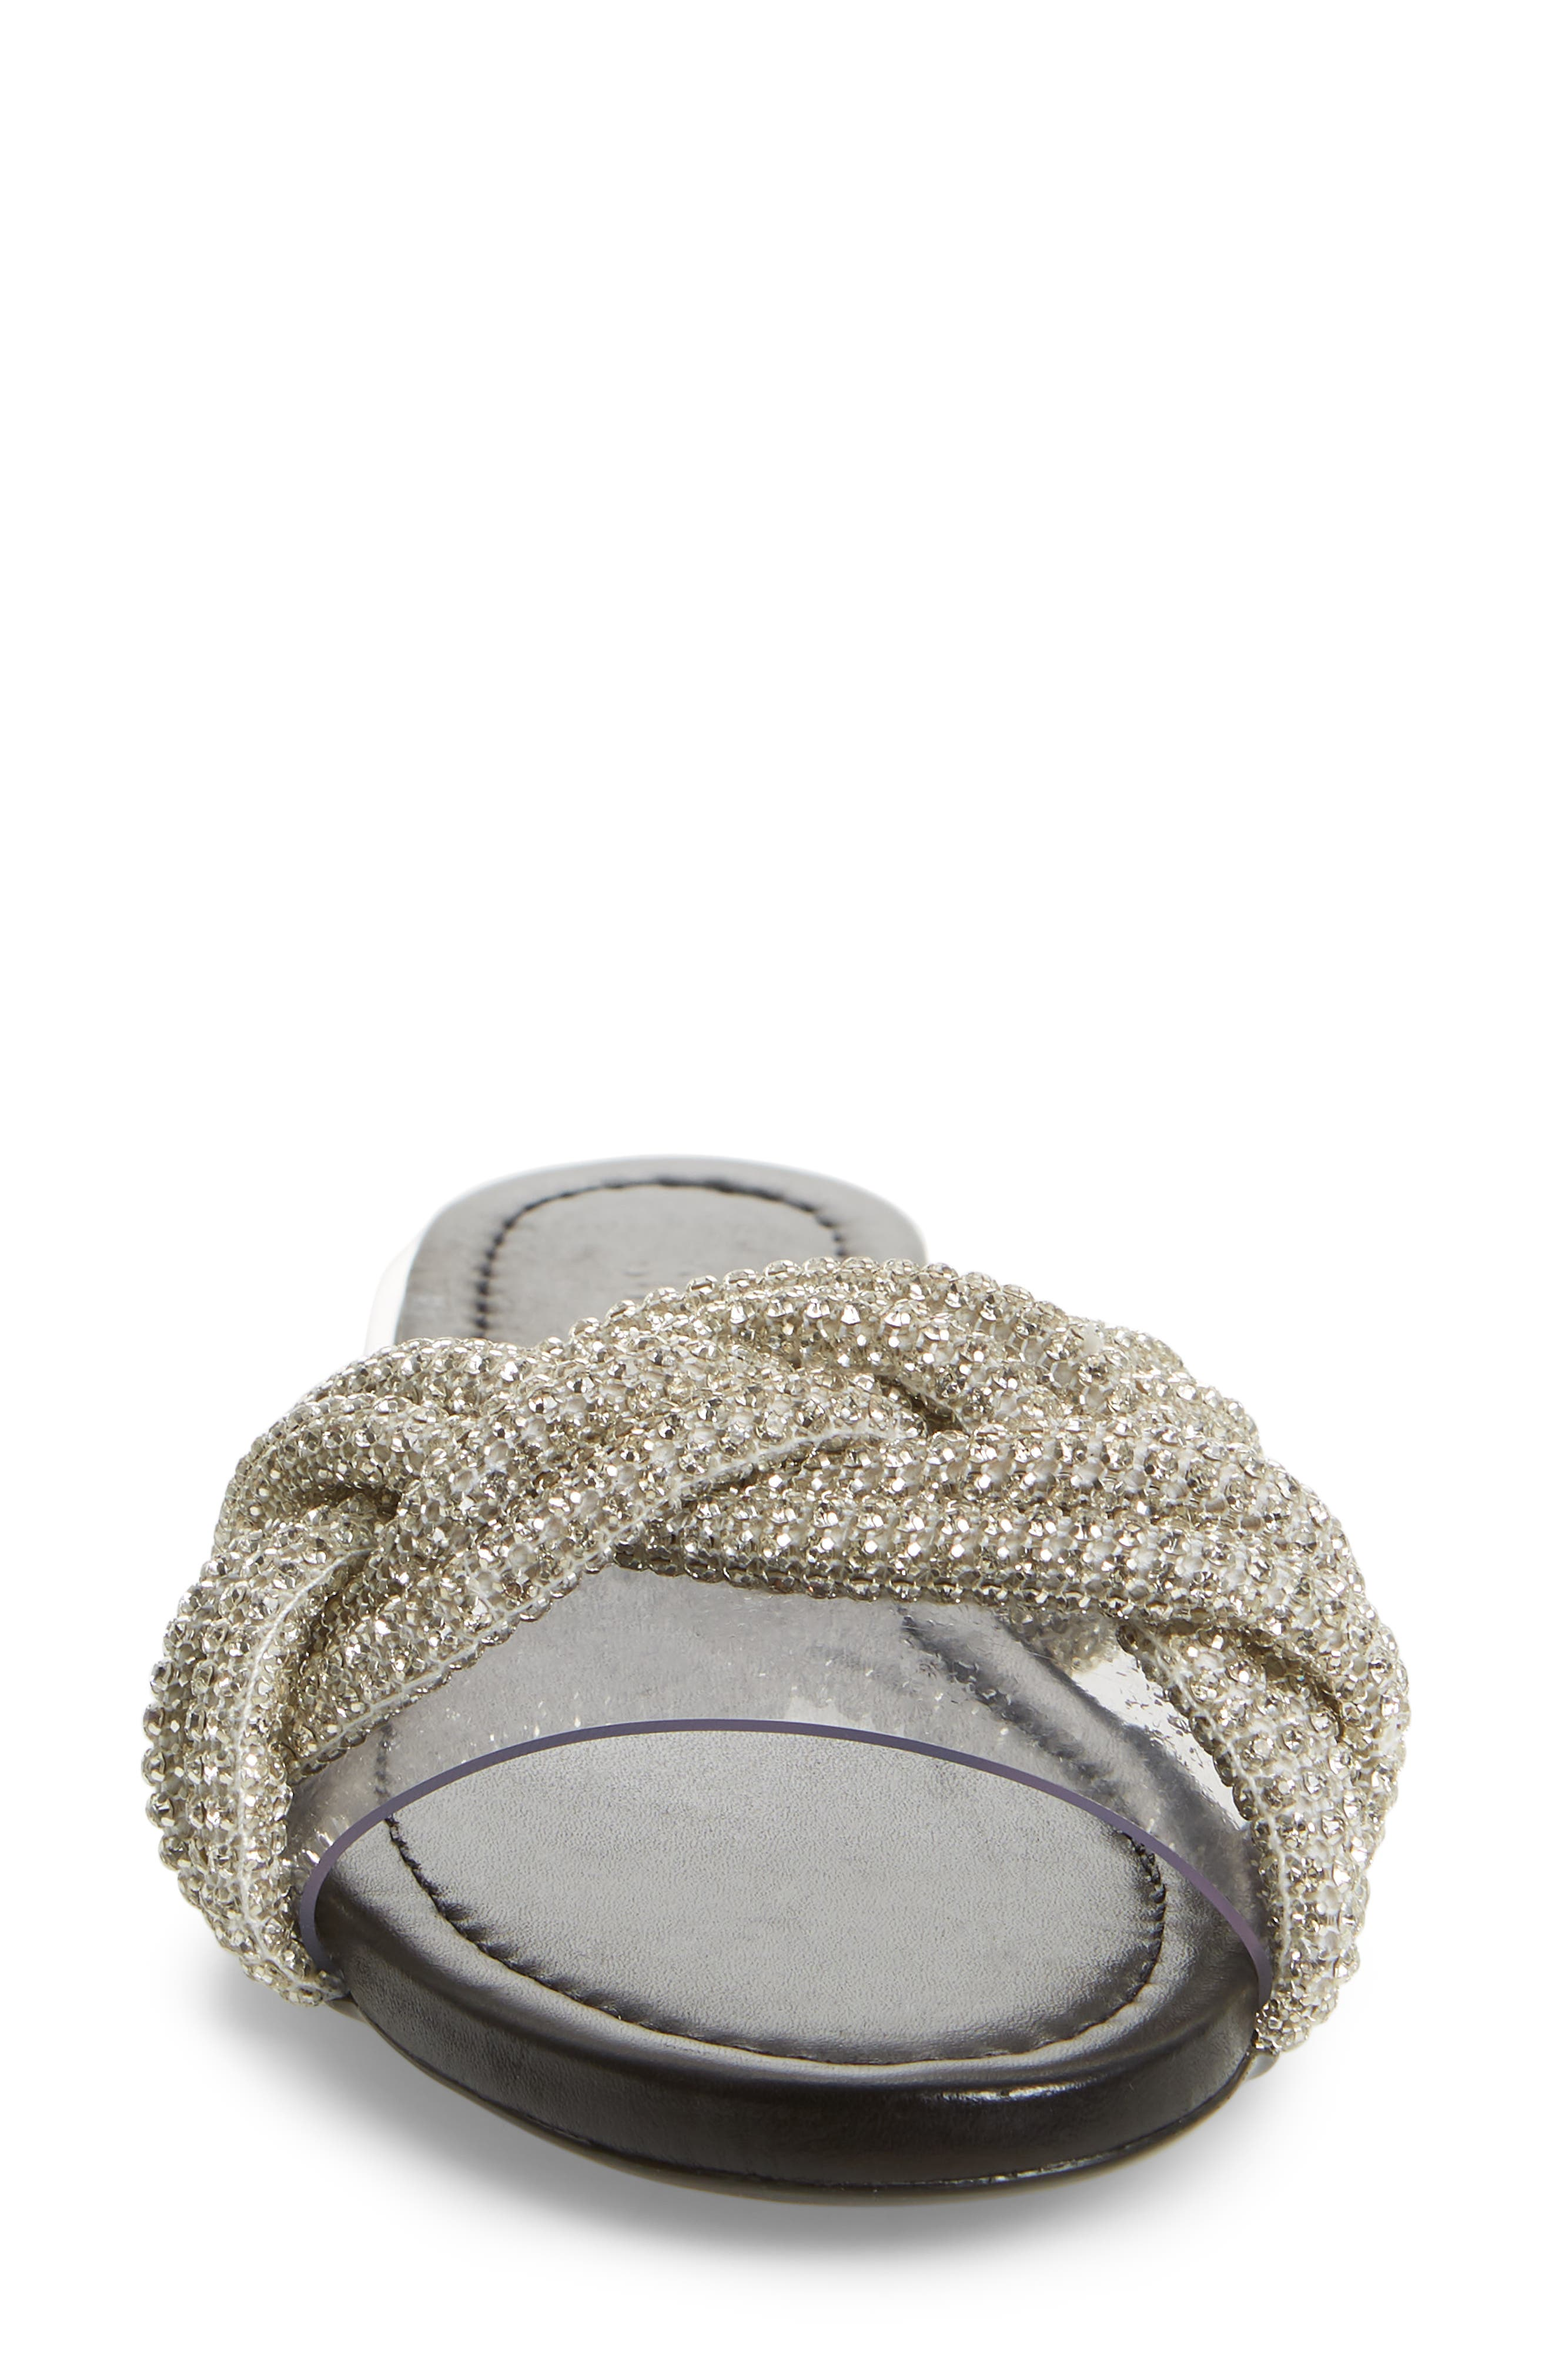 Lindy Braided Slide Sandal,                             Alternate thumbnail 4, color,                             SILVER METALLIC